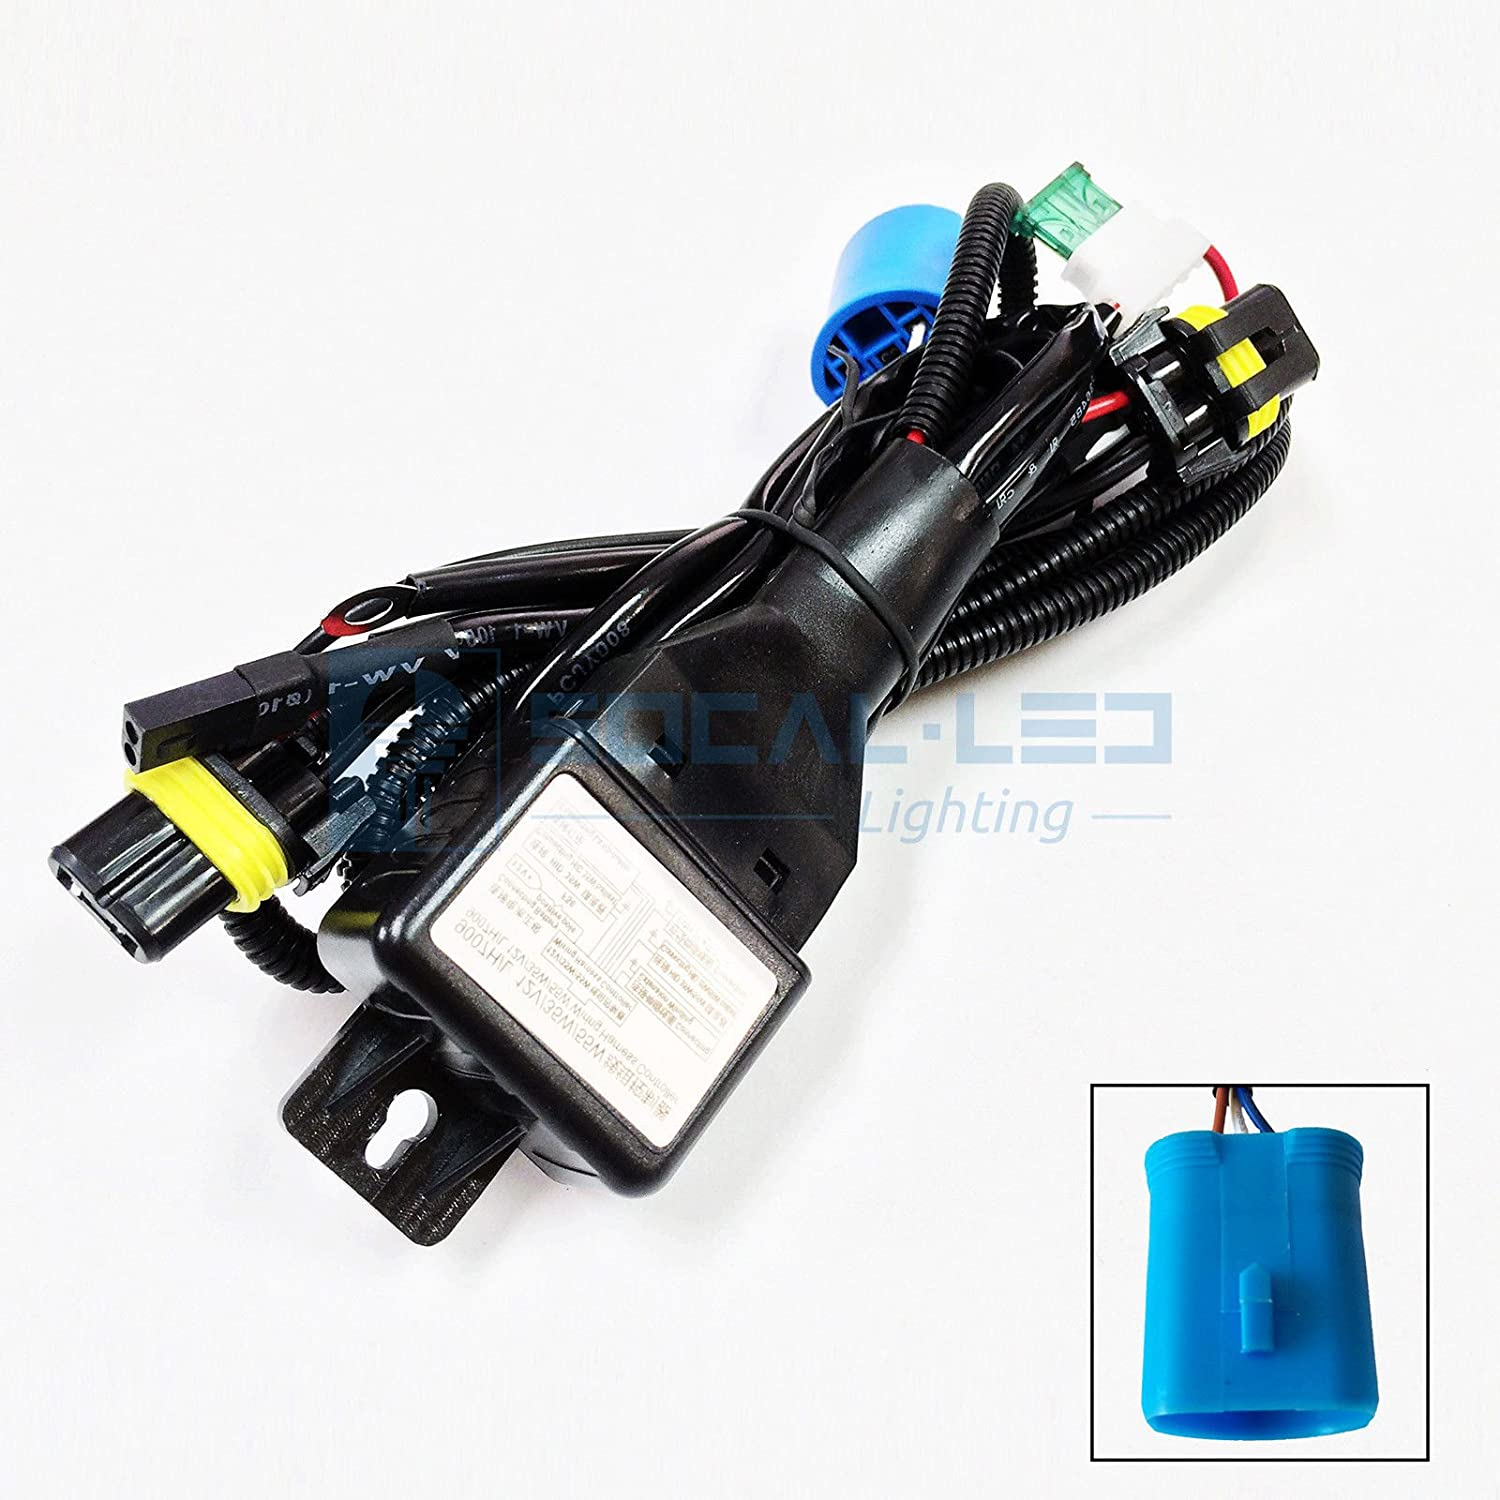 81iLl8cXonL._SL1500_ amazon com o nex hid relay harness 9007 (hb5 9004) 12v 35w 55w bi hid 12v wiring harness controller at creativeand.co